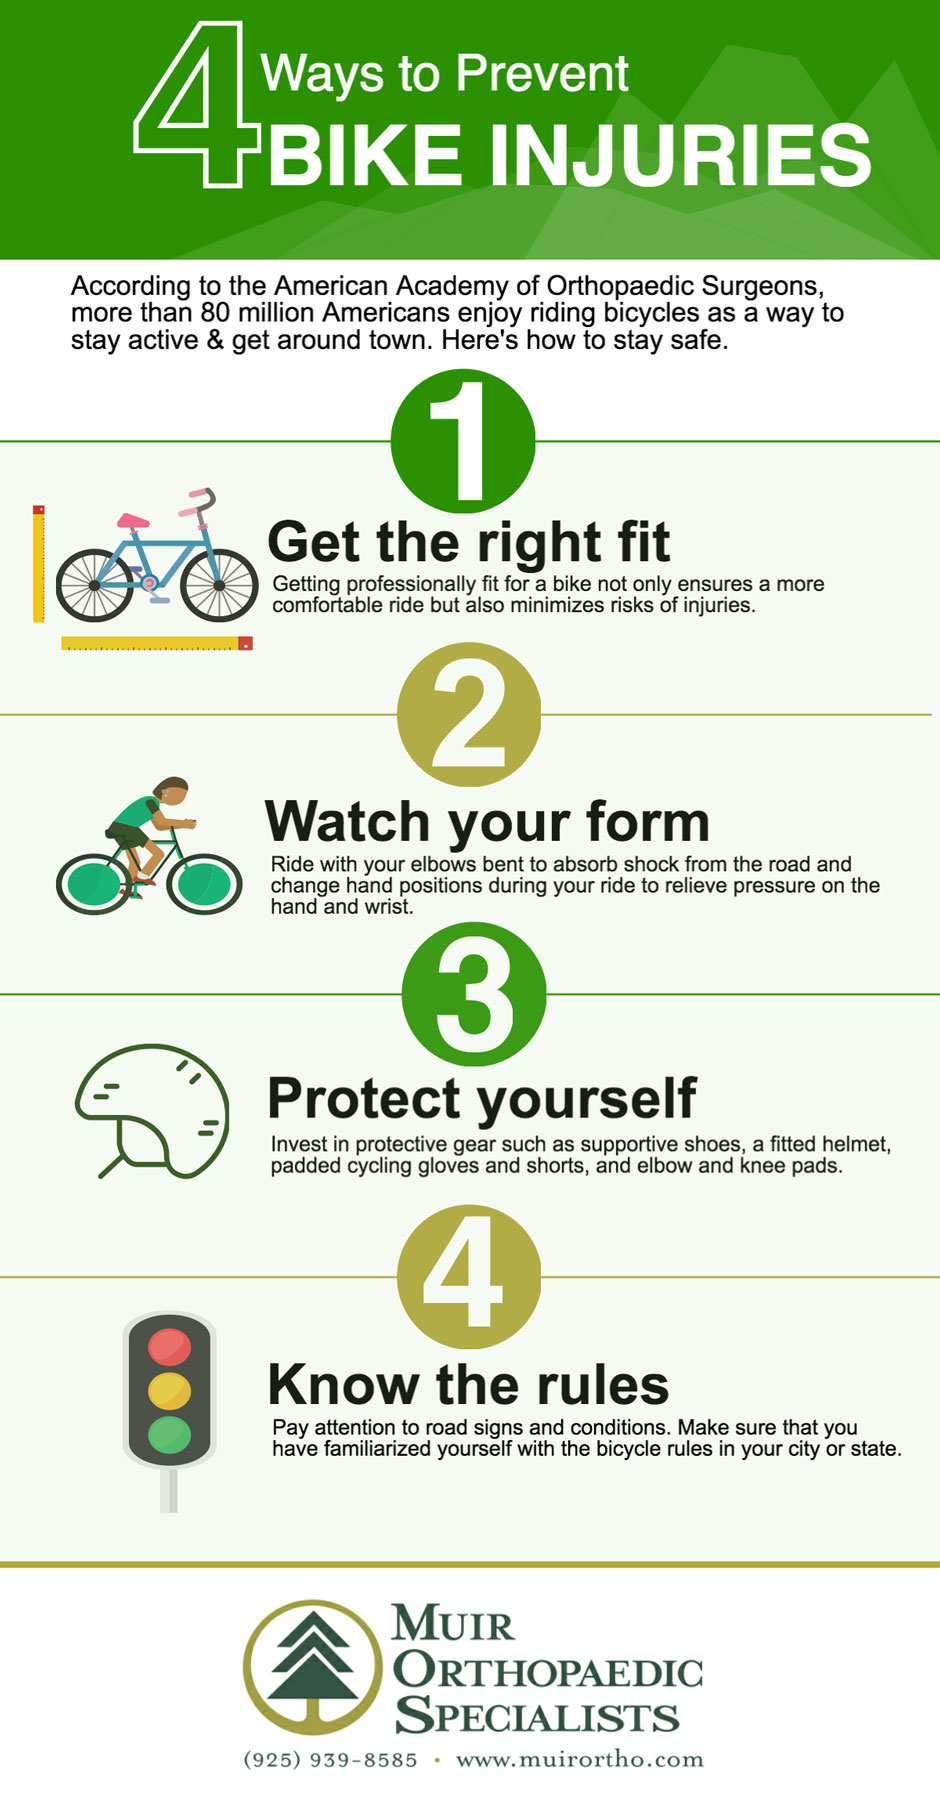 4 Ways to Prevent Bike Injuries infographic